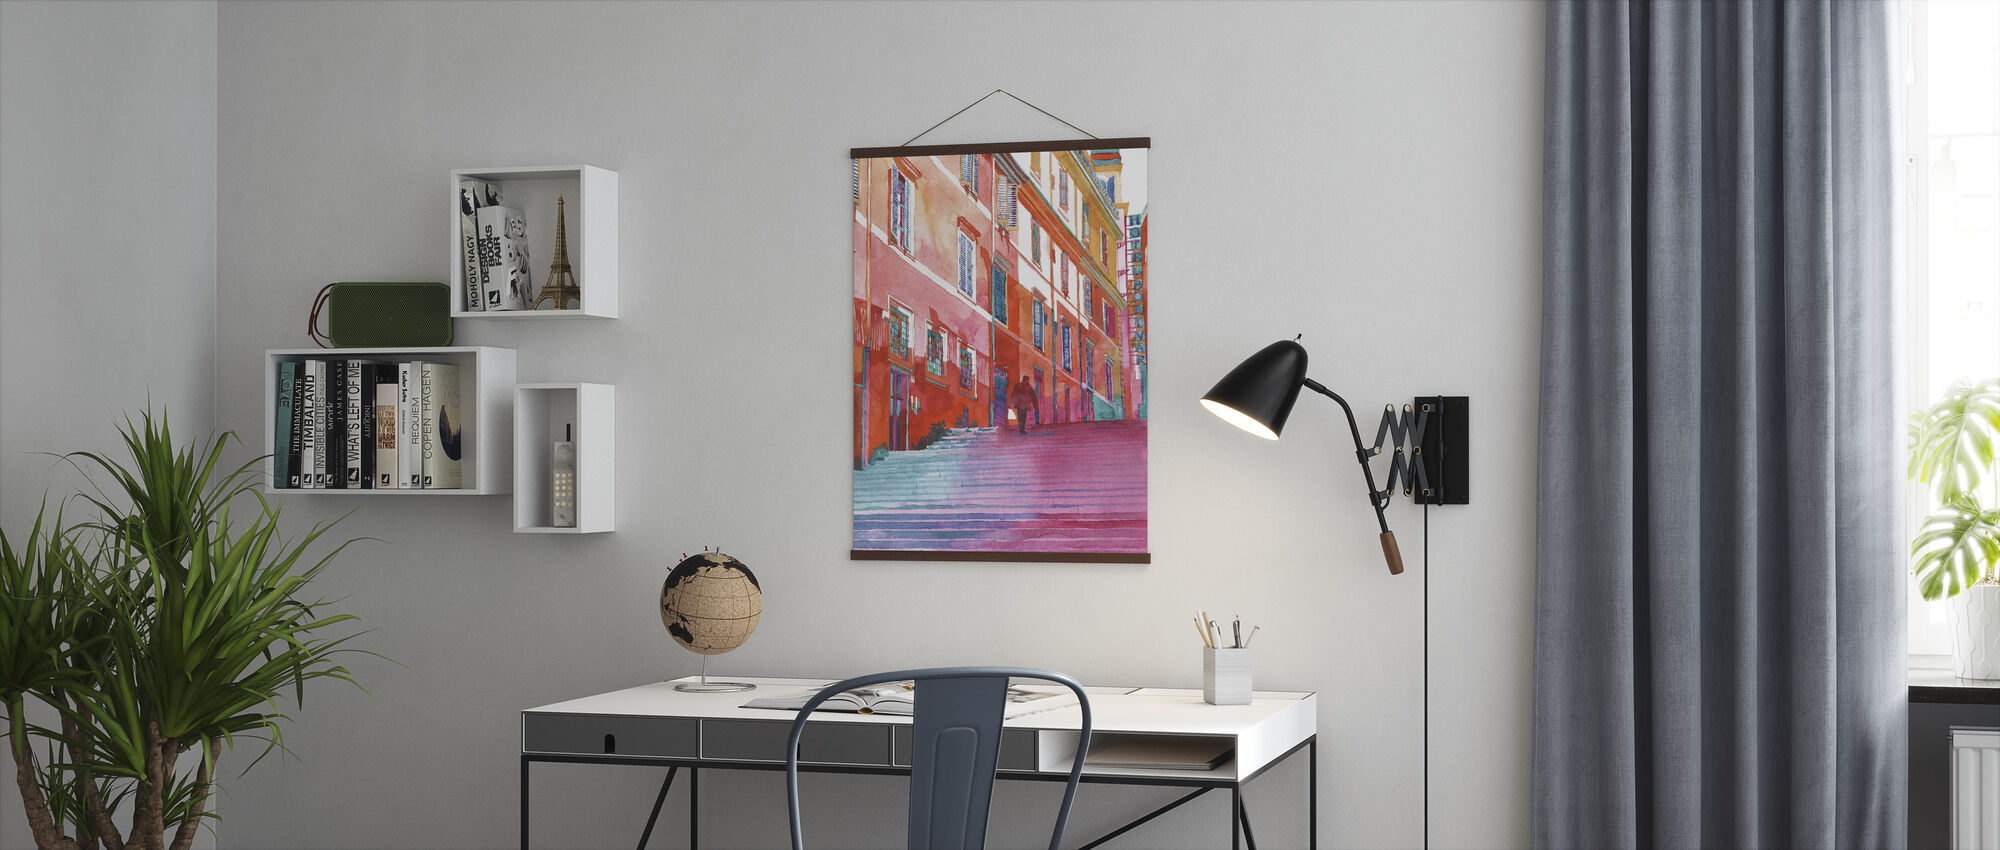 Hotel in Rome - Poster - Office